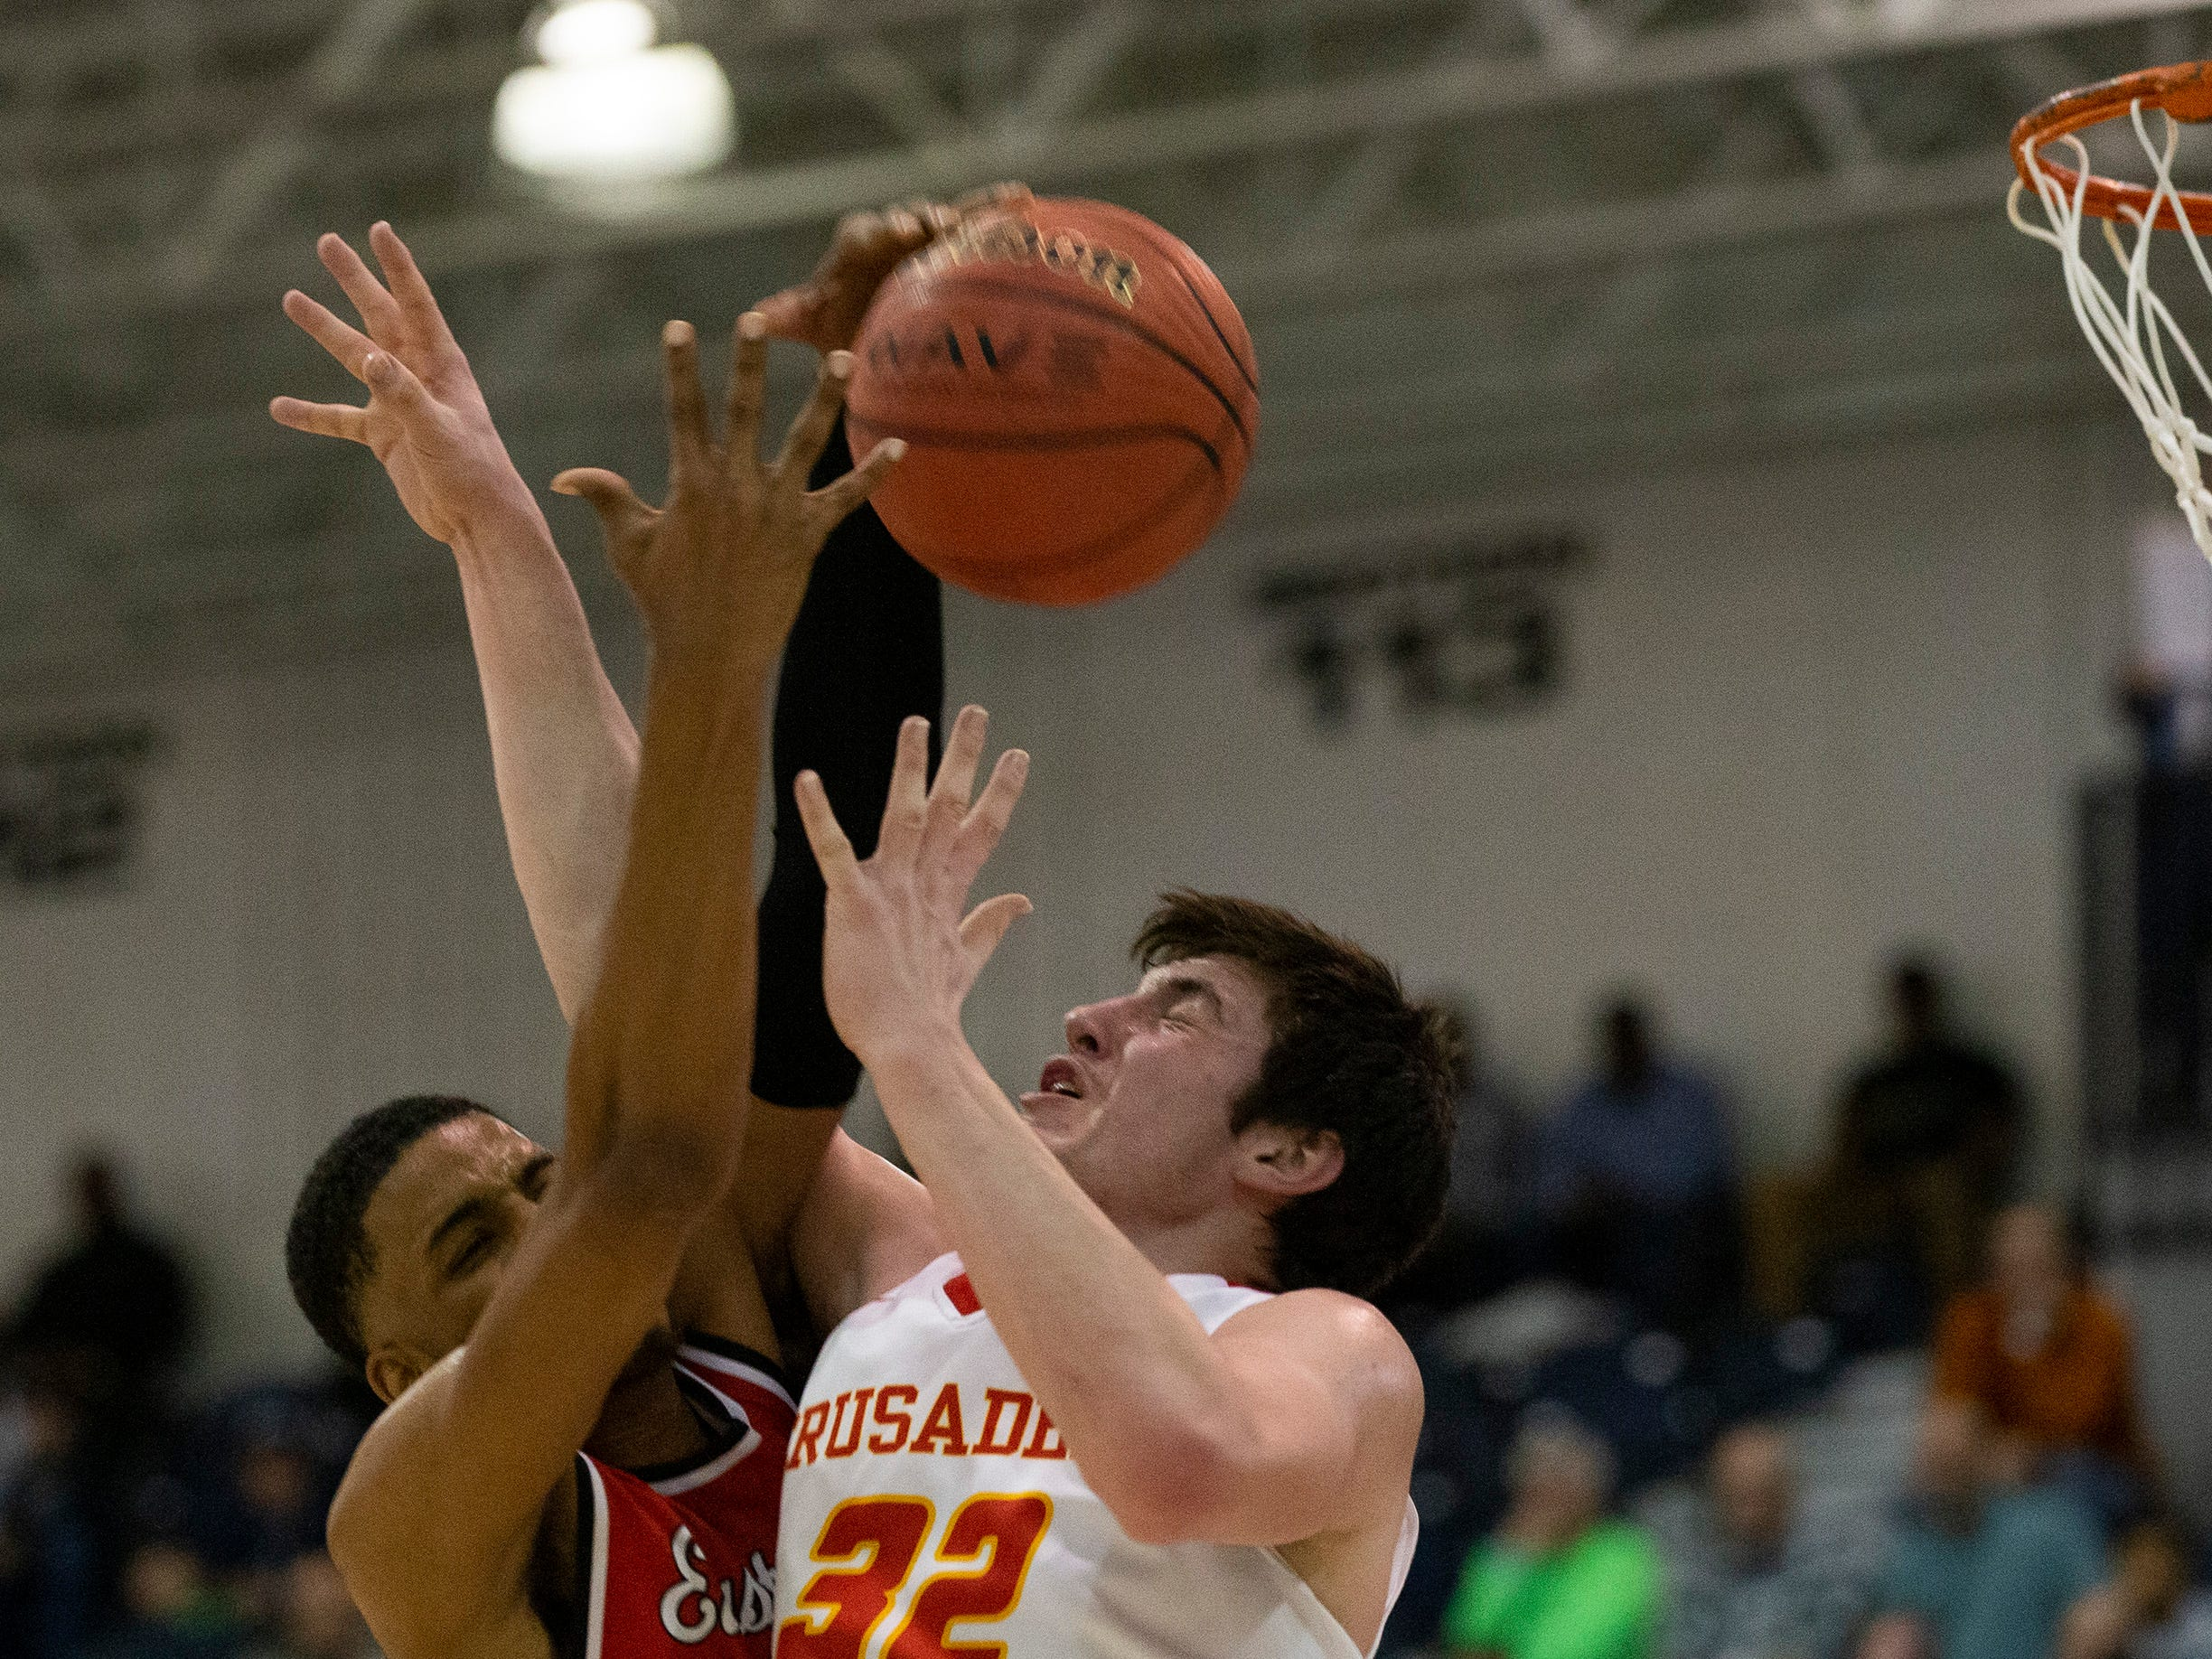 Mikah Johnson Jr. Eastside, goes after loose ball as does Bergen Catholic's Zachary Freemantle. Bergen Catholic vs. Newark East Side in the 5:30 p.m. semifinals of the 2019 NJSIAA Tournament of Champions in Toms River on March 15, 2019.